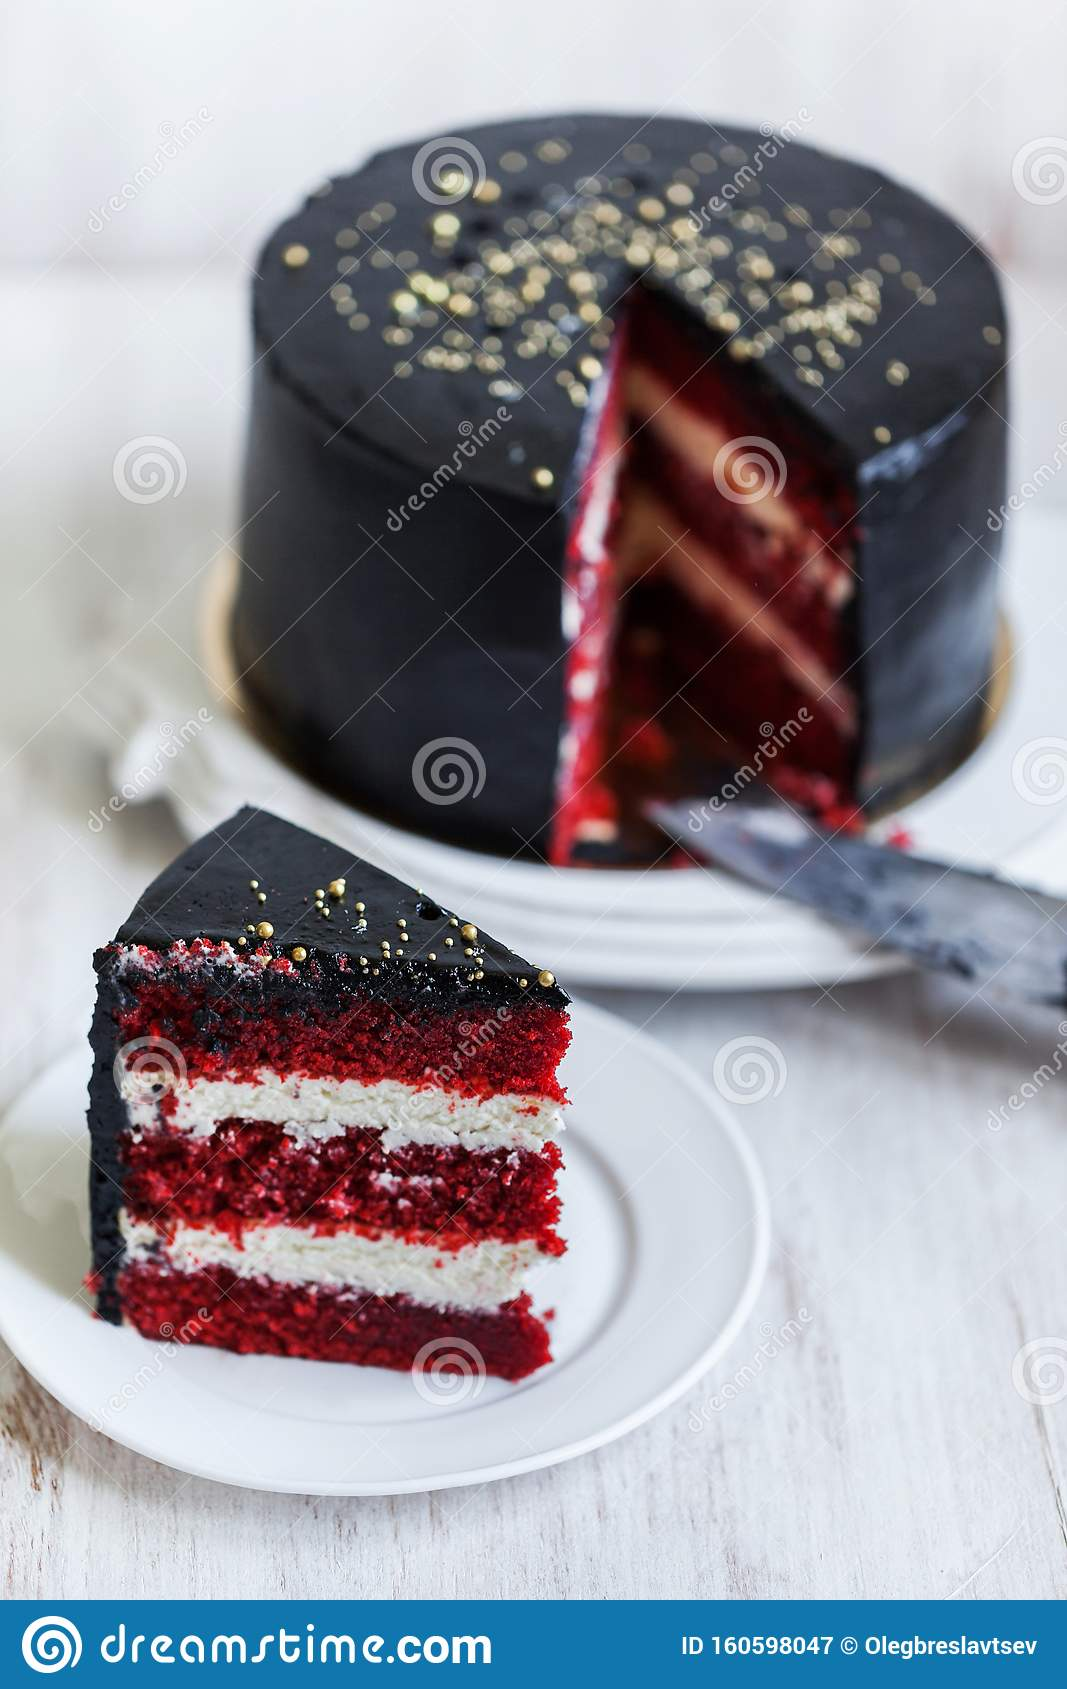 Stupendous Round Black Cake With Striped Red And White Filling Stock Image Funny Birthday Cards Online Amentibdeldamsfinfo